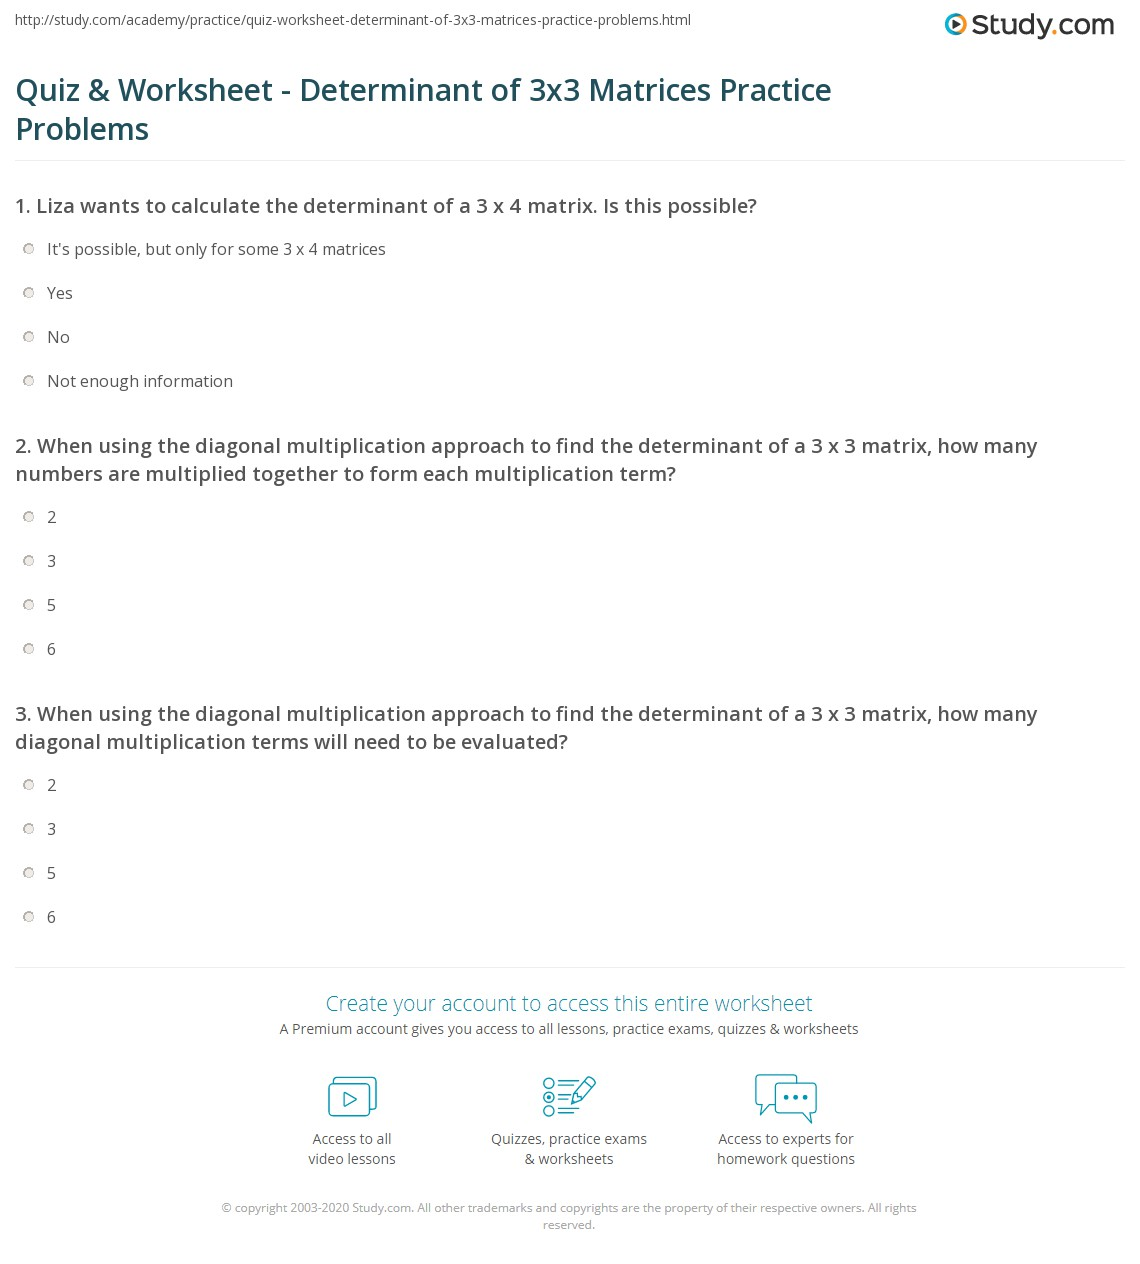 quiz worksheet determinant of 3x3 matrices practice problems. Black Bedroom Furniture Sets. Home Design Ideas